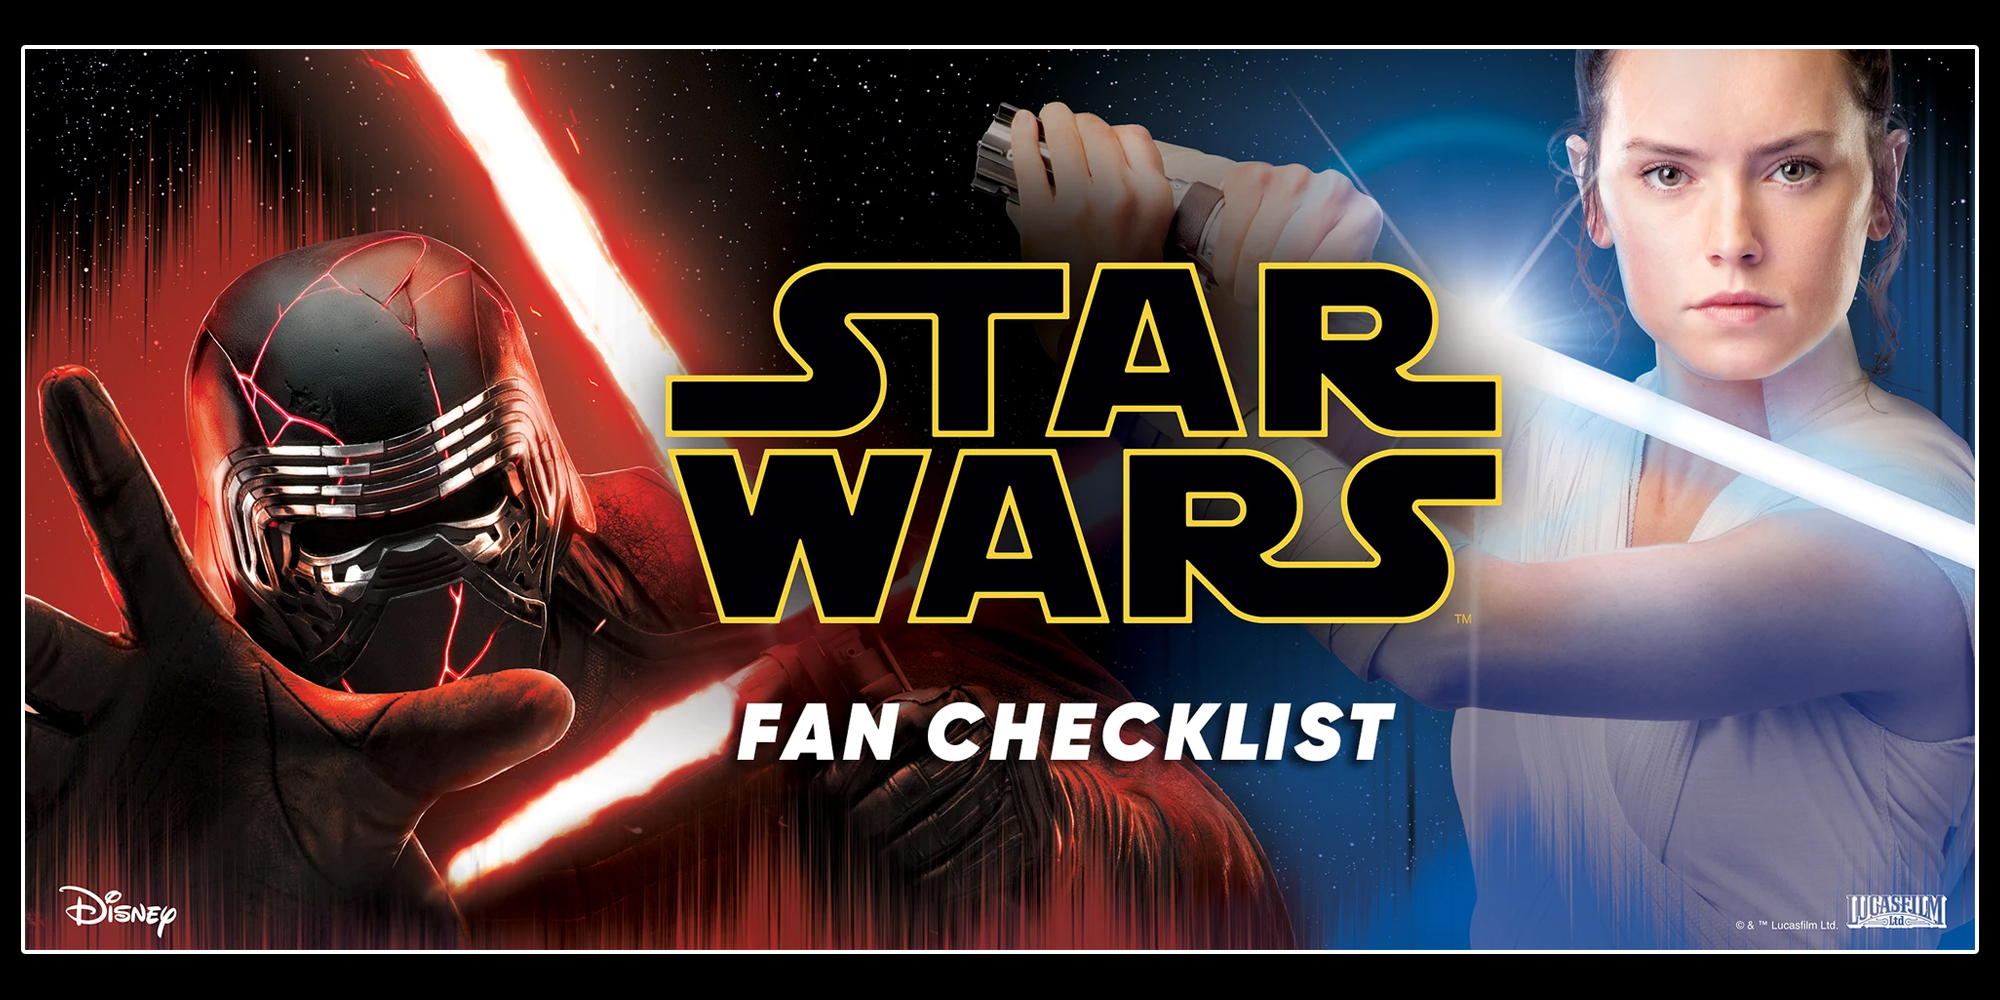 Hasbro star wars checklist